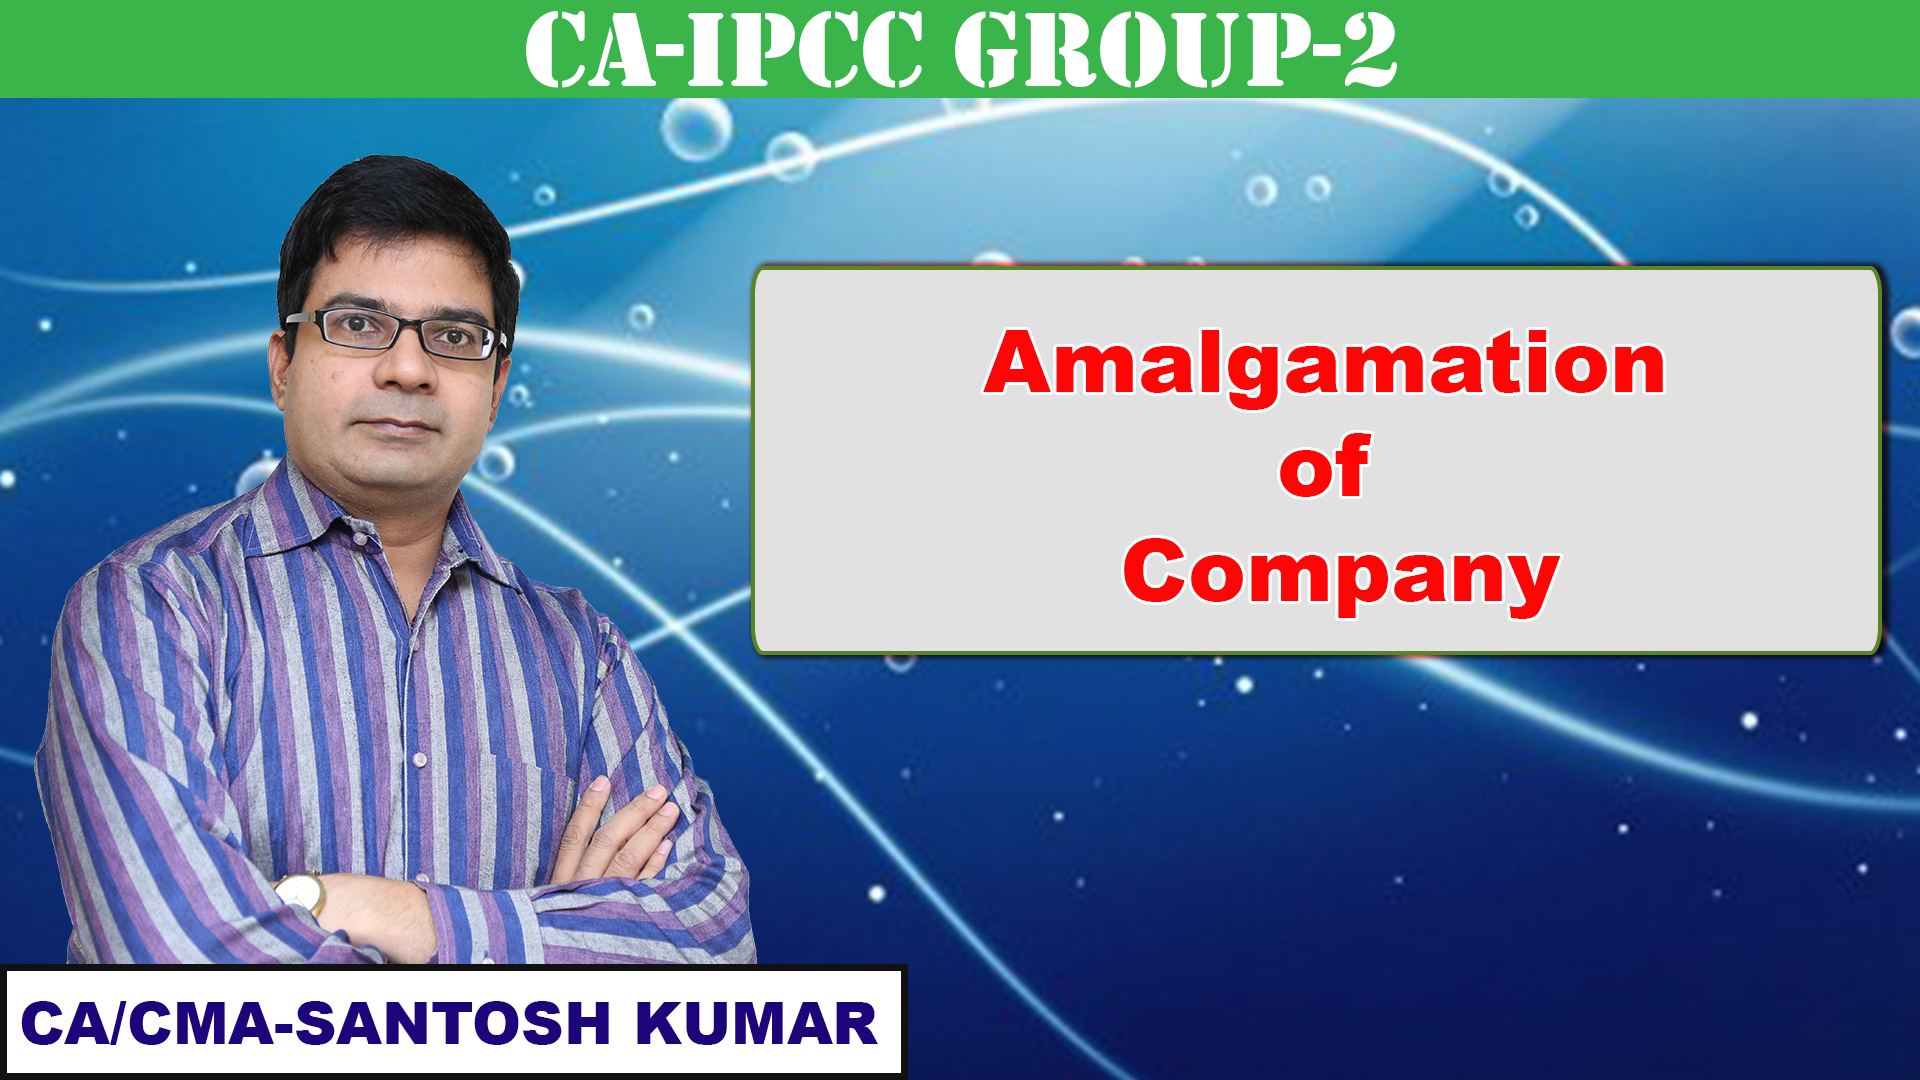 Amalgamation of Company